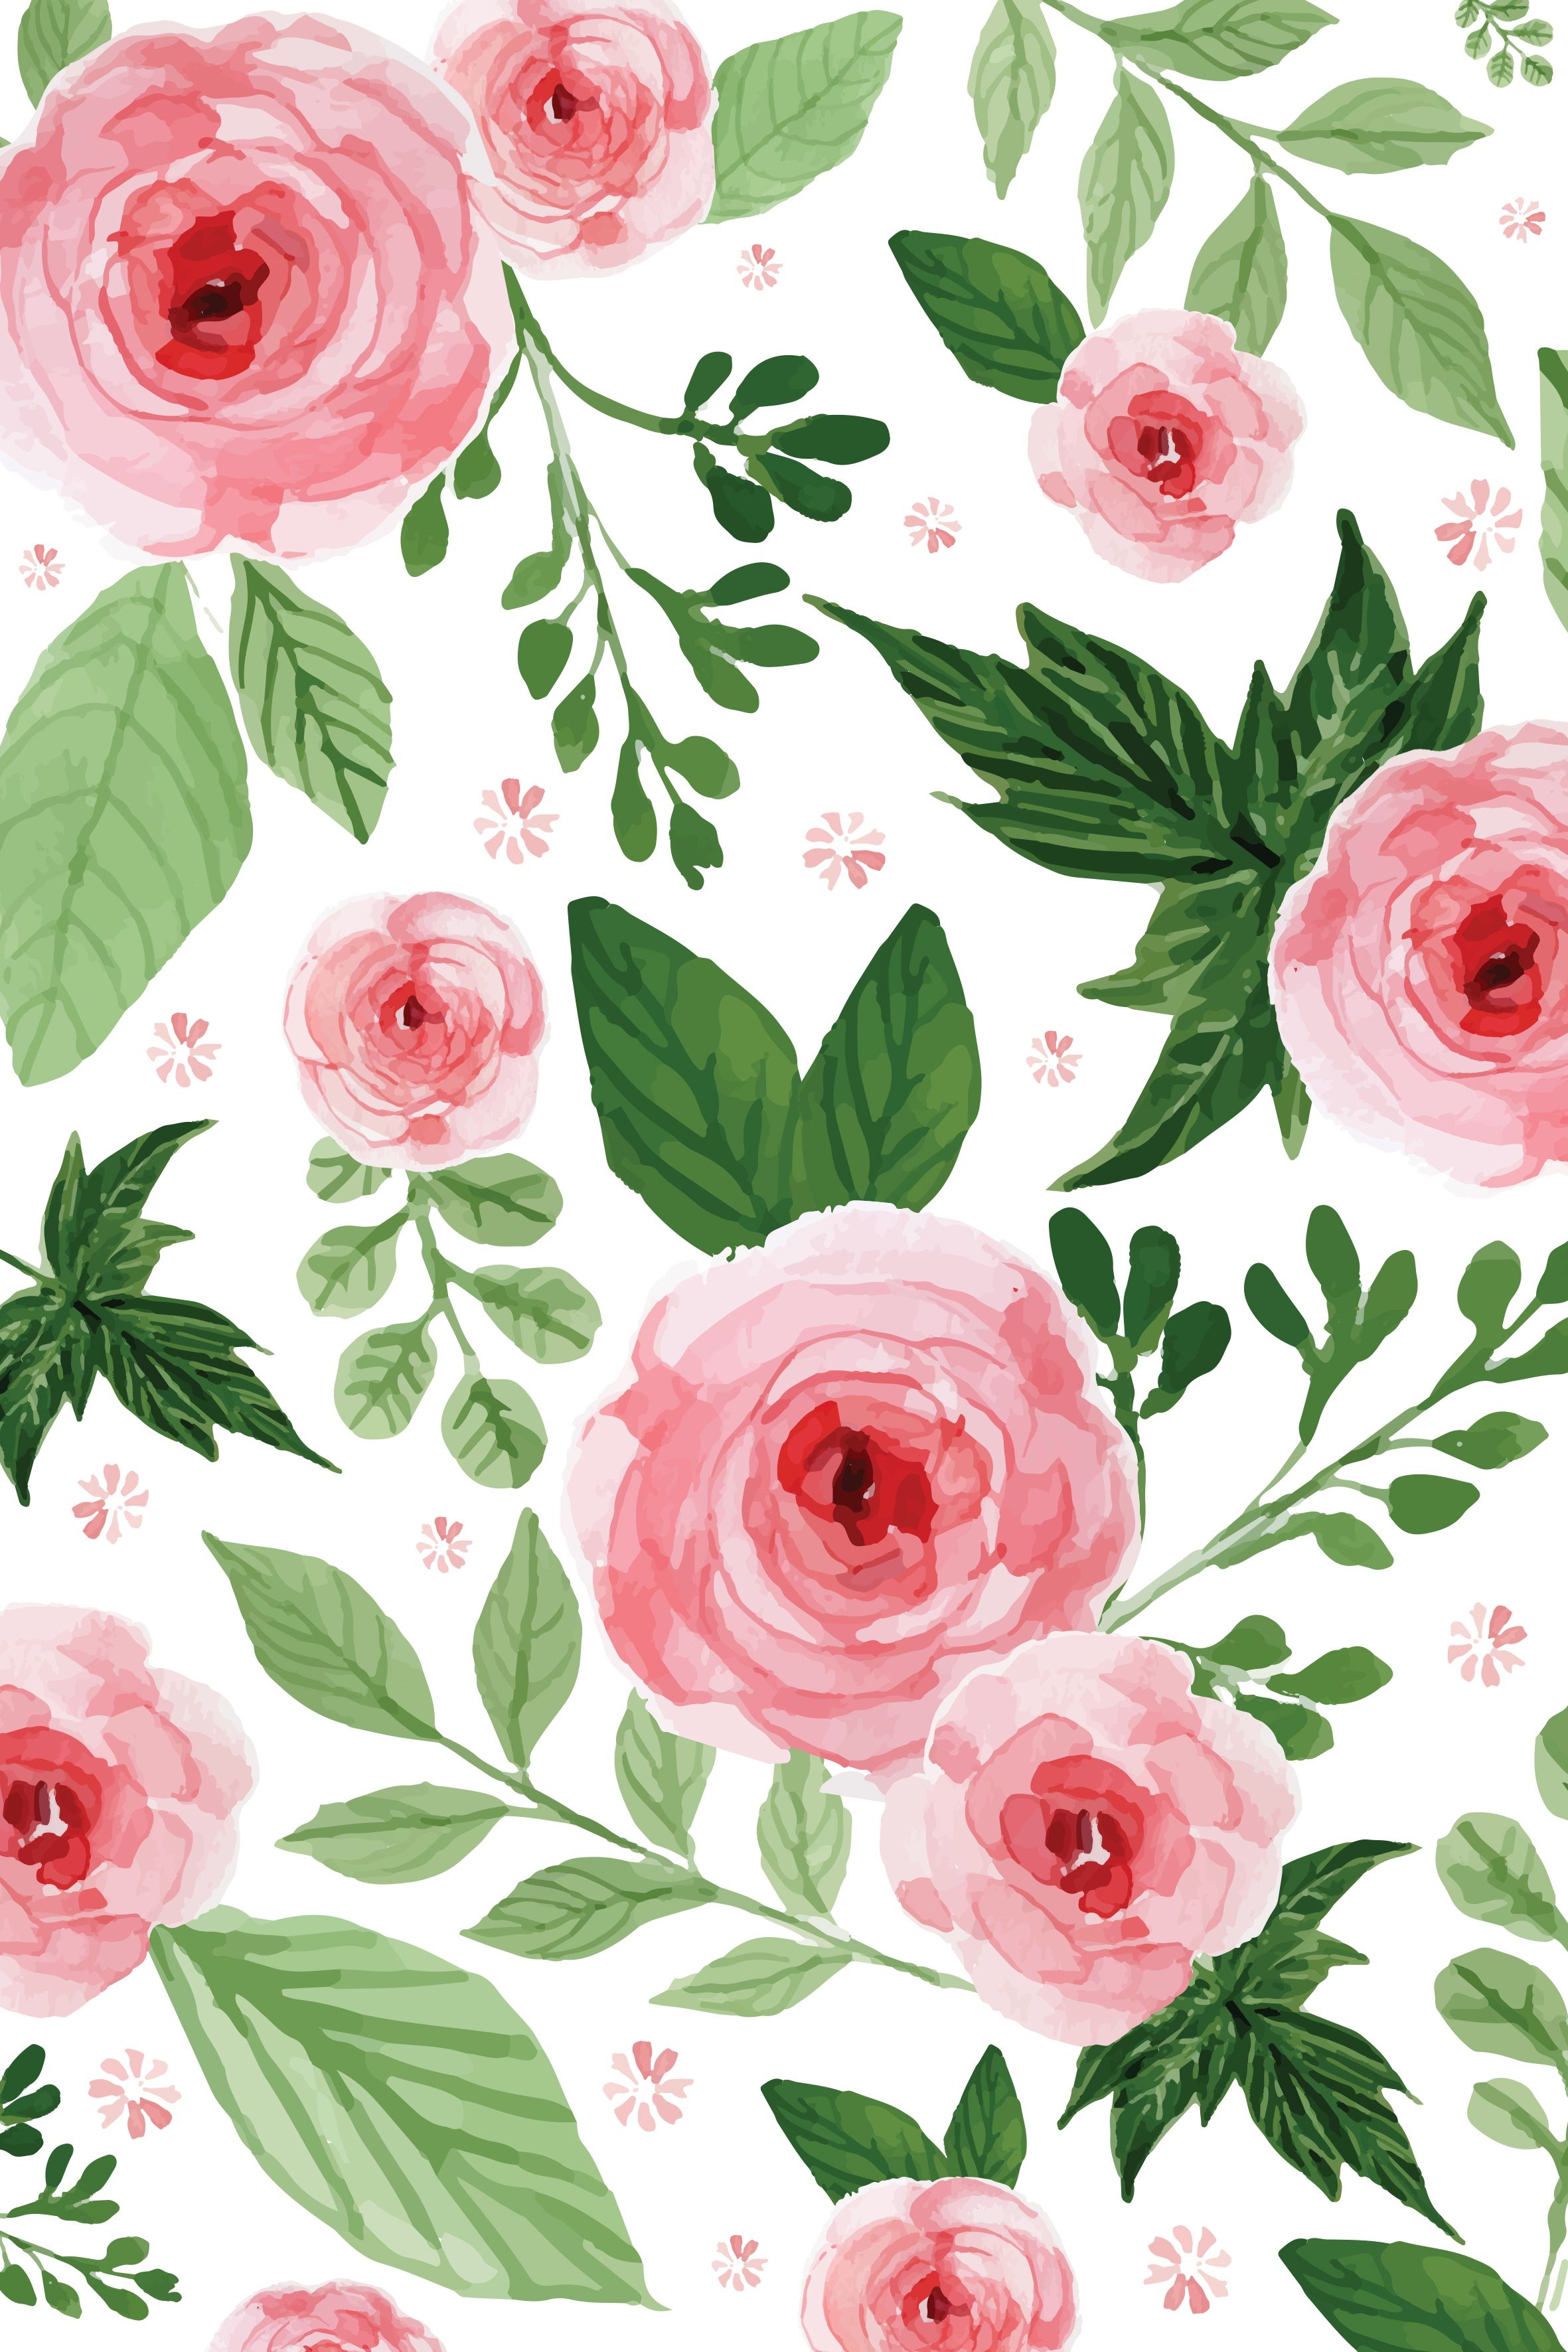 Cute Aesthetic Flower Backgrounds